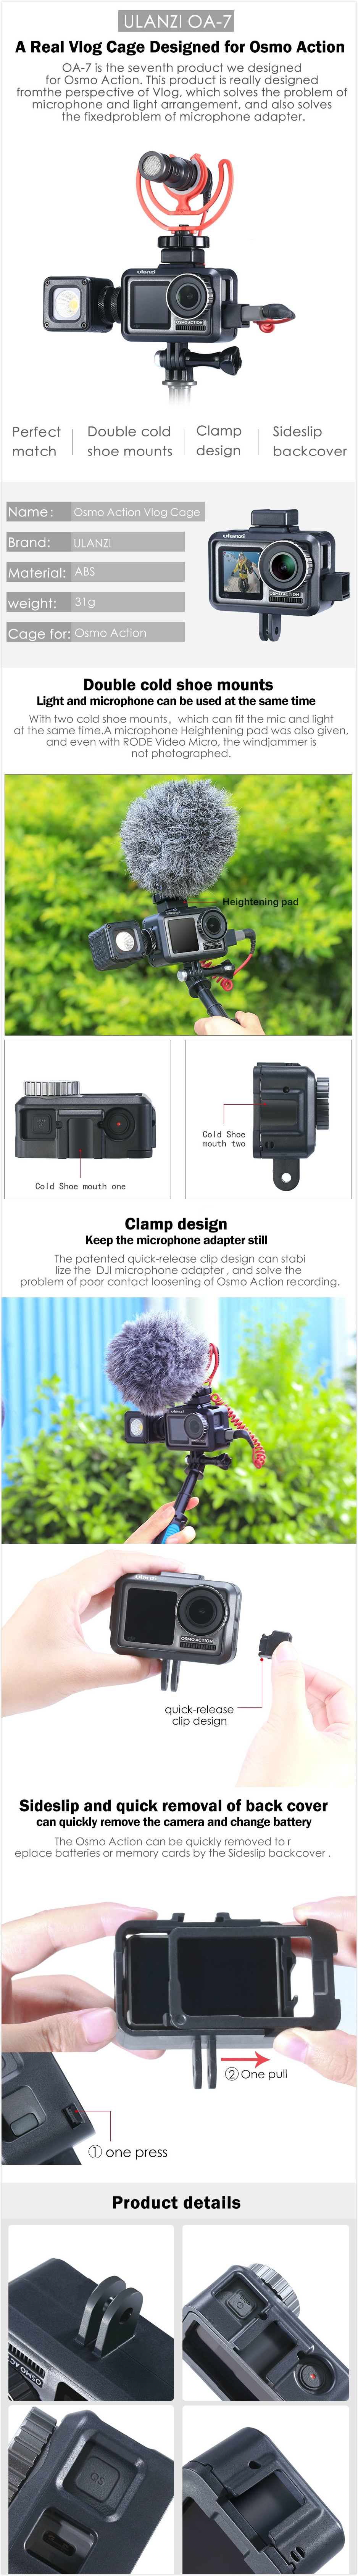 Ulanzi OA-7 OSMO Action Vlog Cage Protective Video Case Frame Mount Housing Shell Cover for DJI OSMO Action Camera